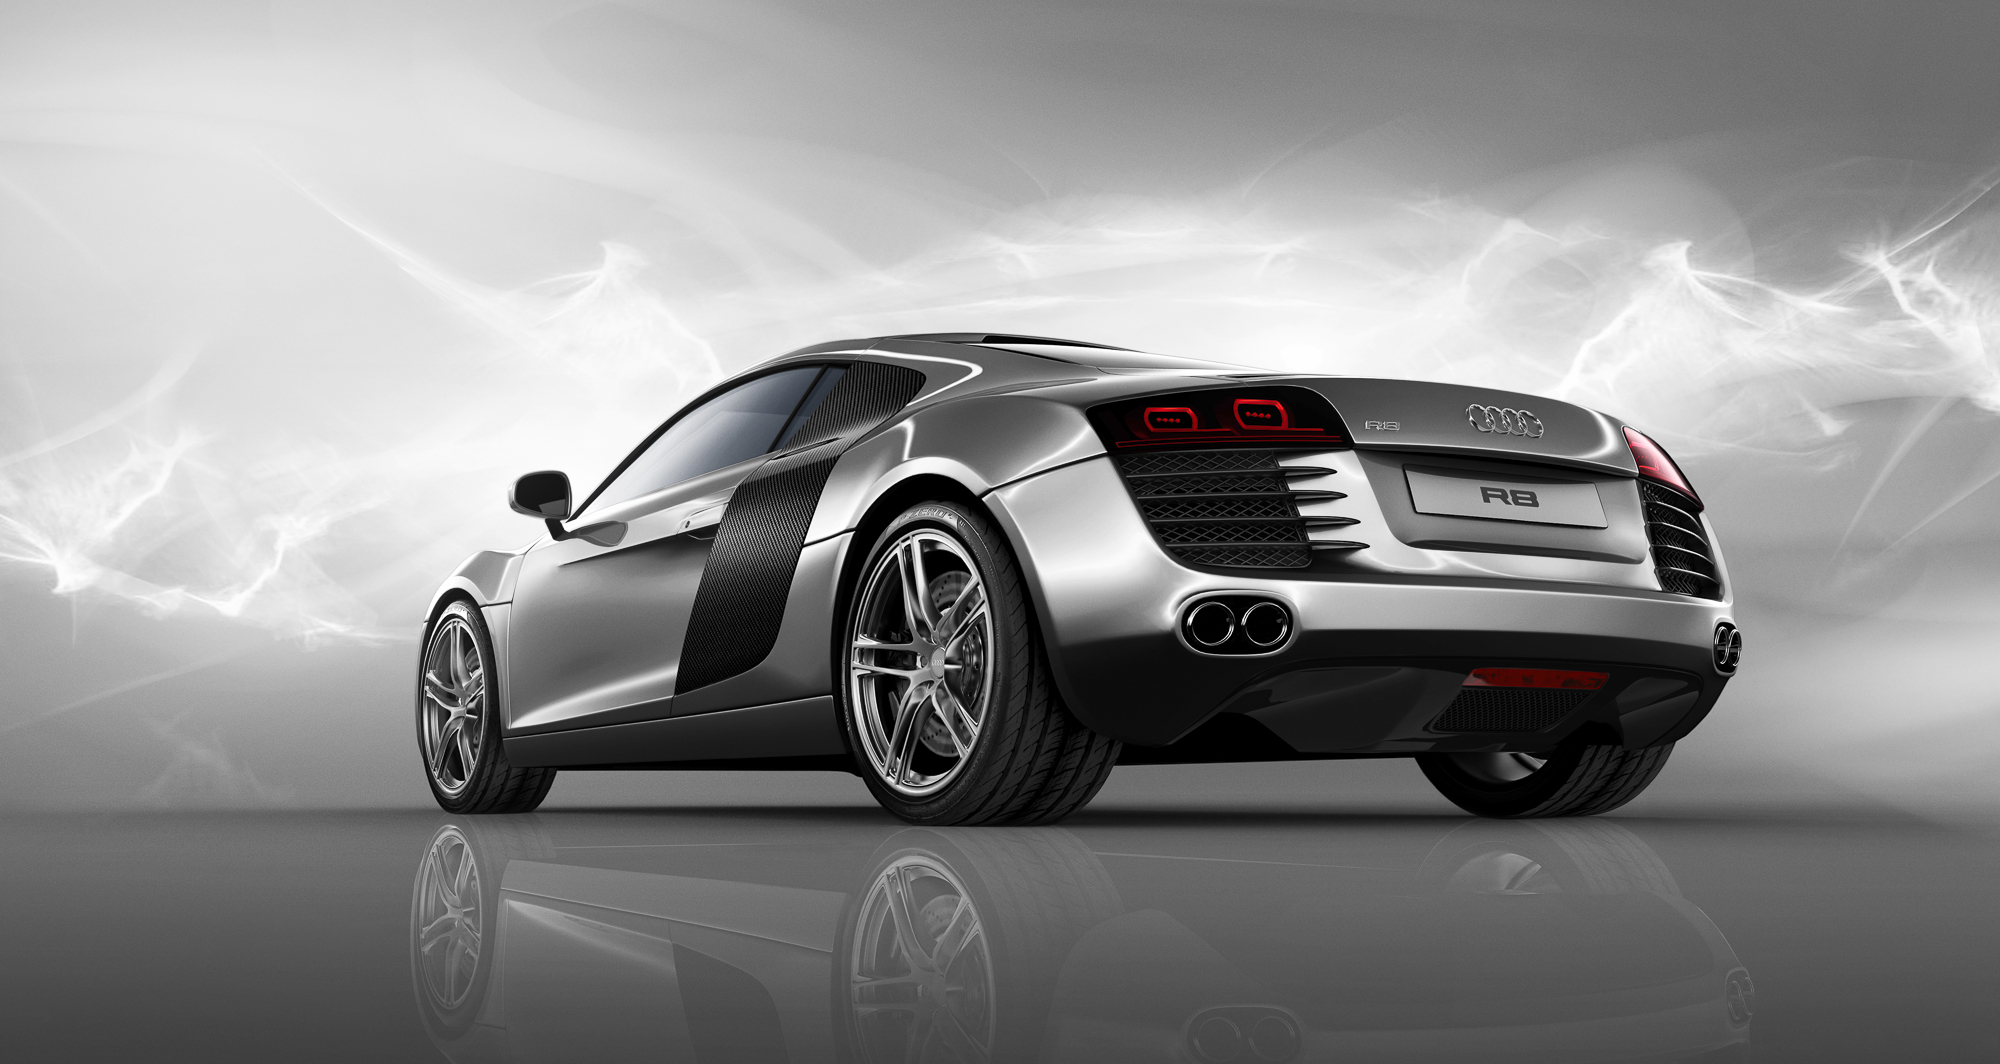 migs-foto-cgi-car-photography-automotive-hong-kong-audi-r8-rear-studio-sRGB-2000px